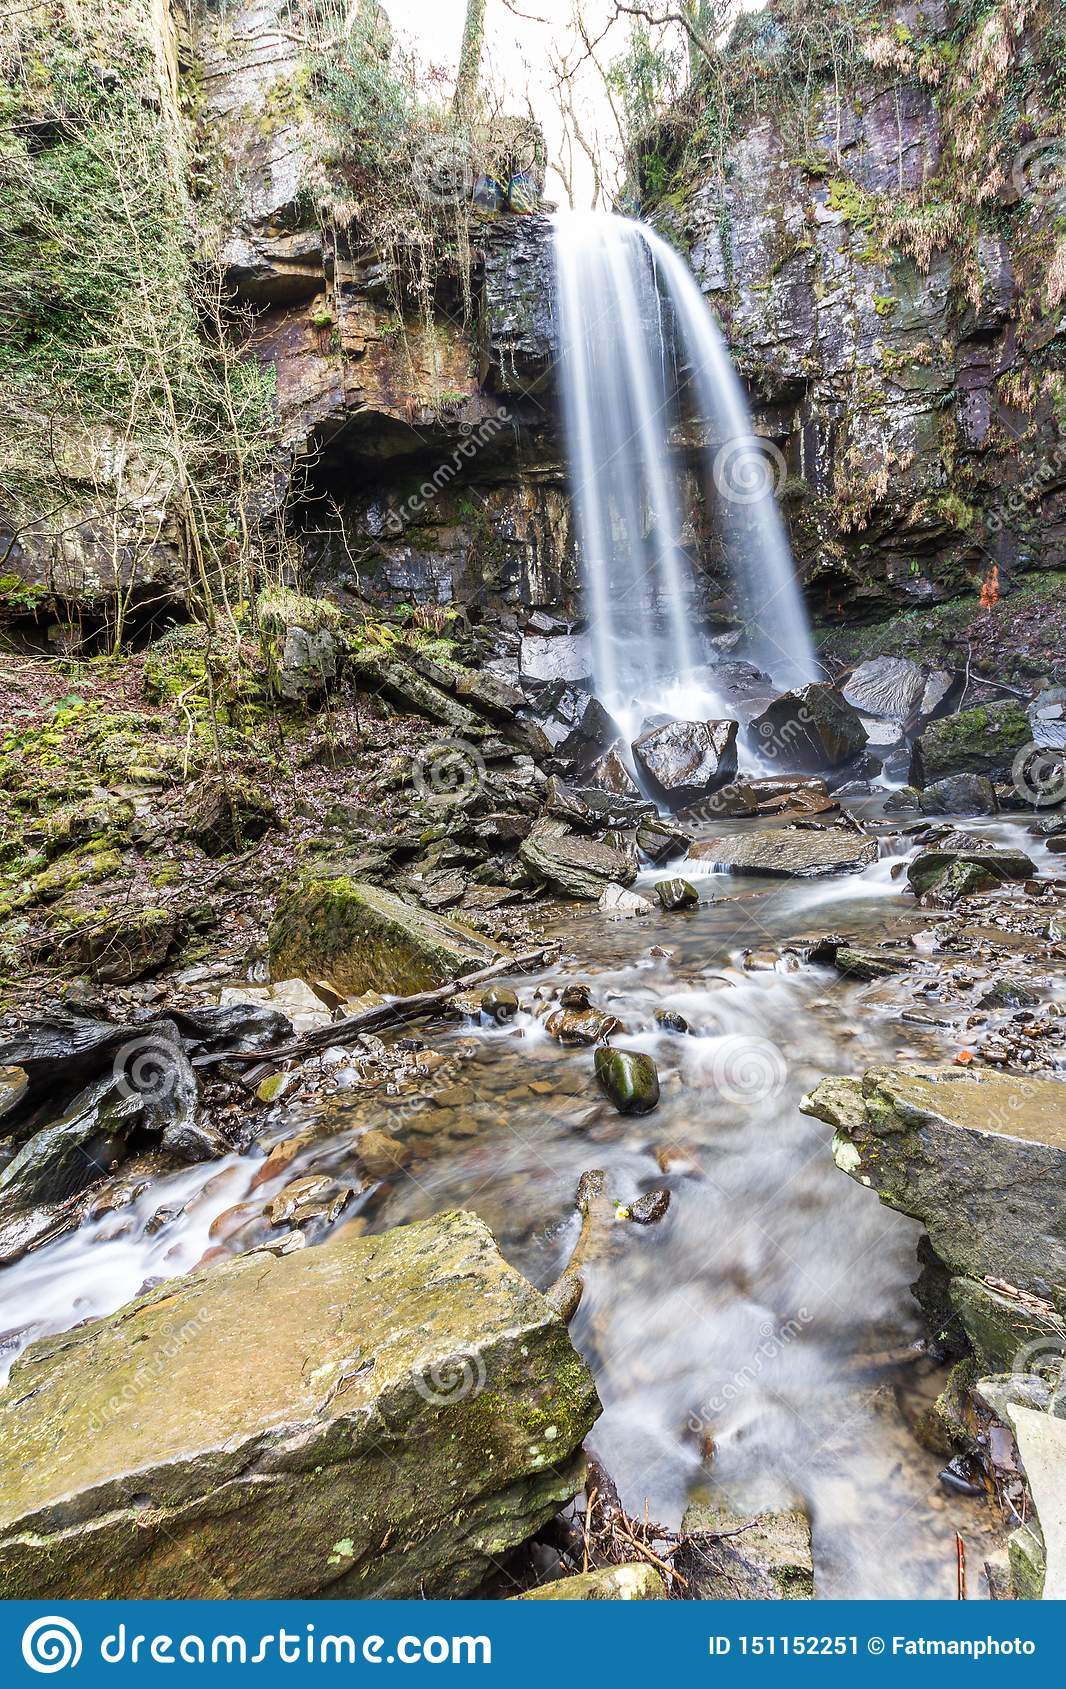 Water cascading down beautiful waterfall, Melincourt, portrait, wide angle